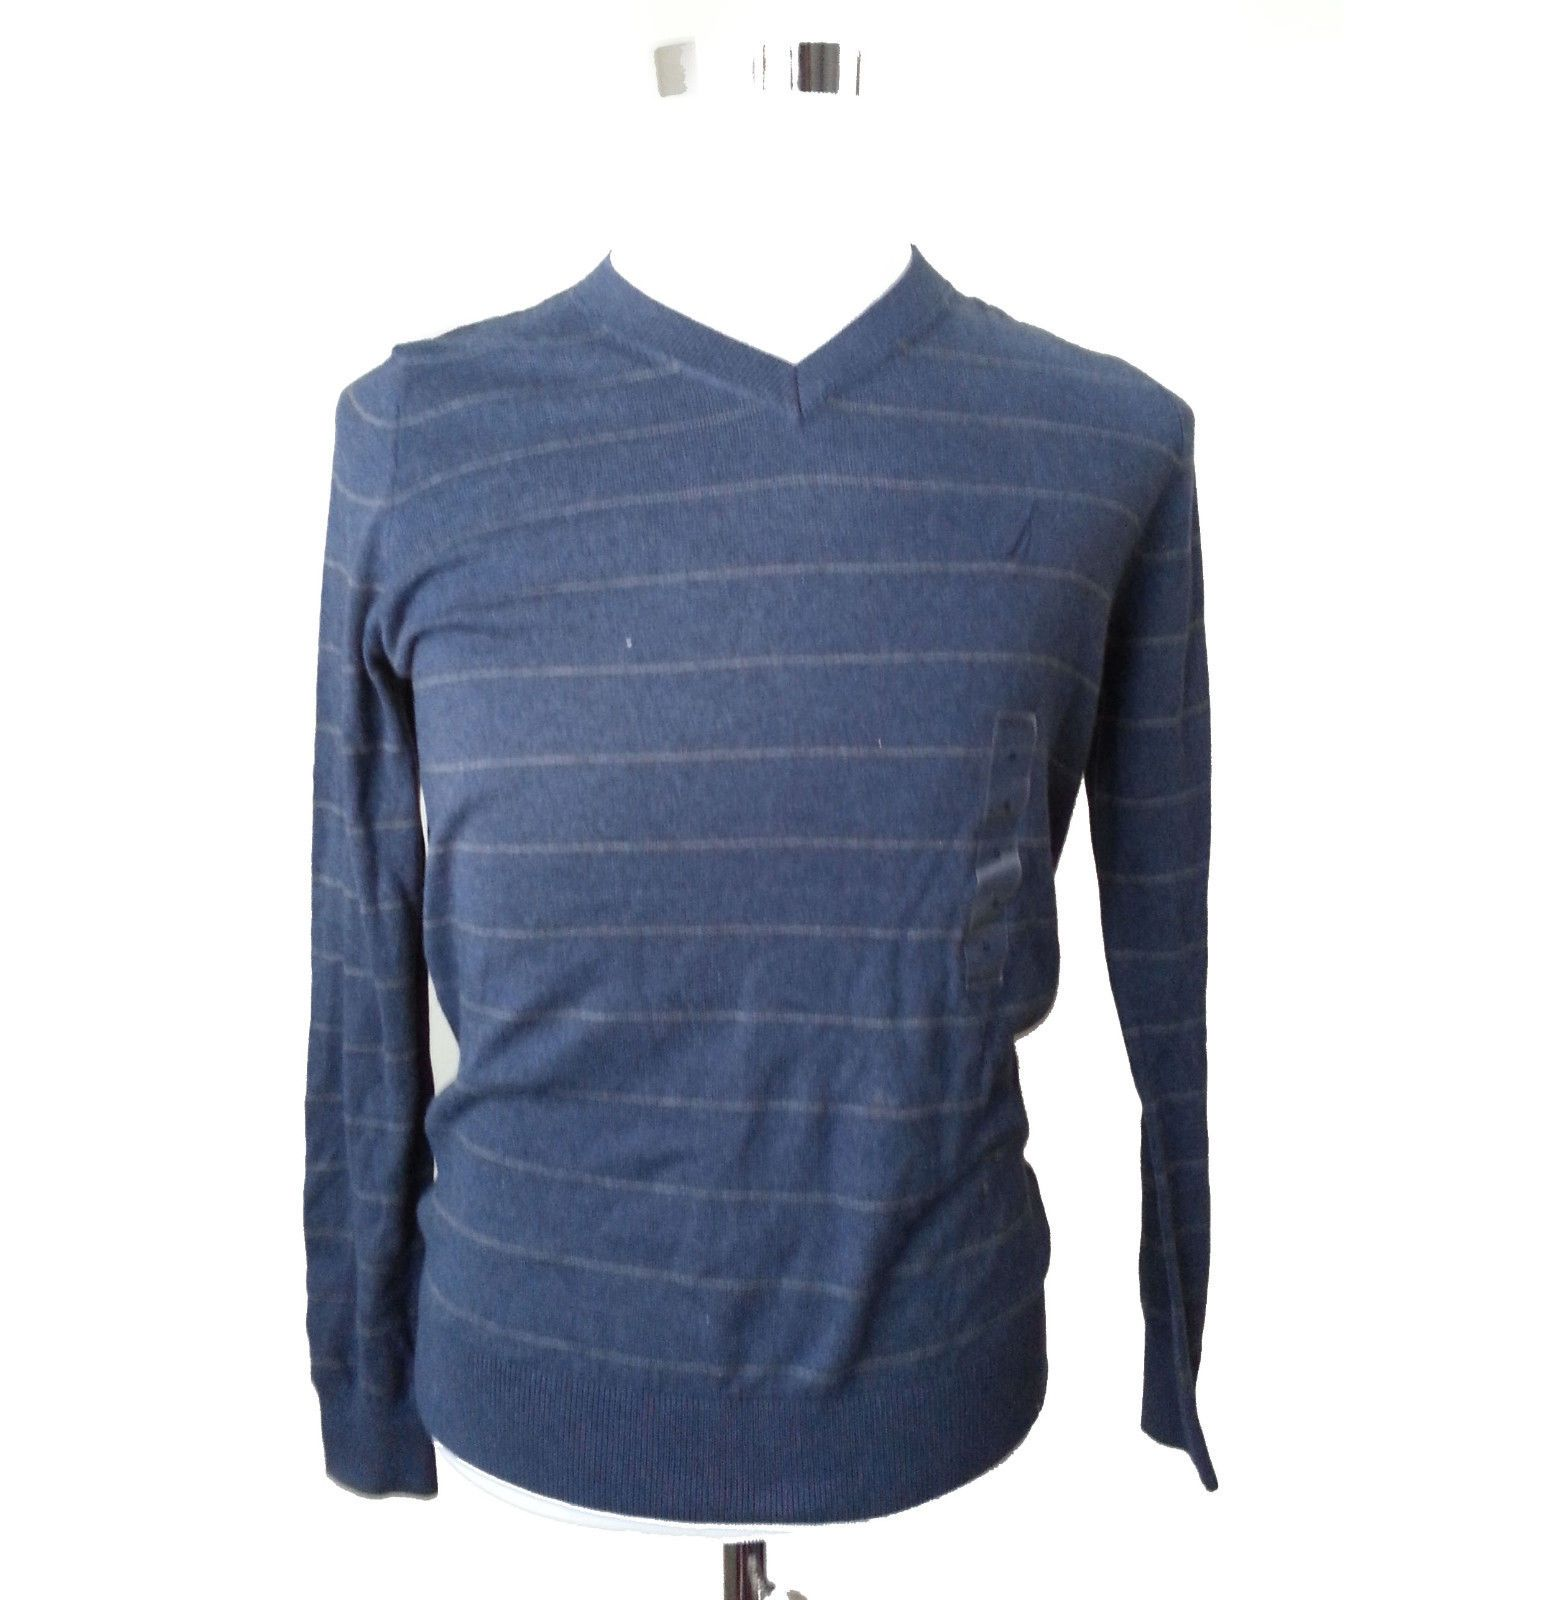 Details about NAUTICA men cotton v-neck sweater size S blue with ...